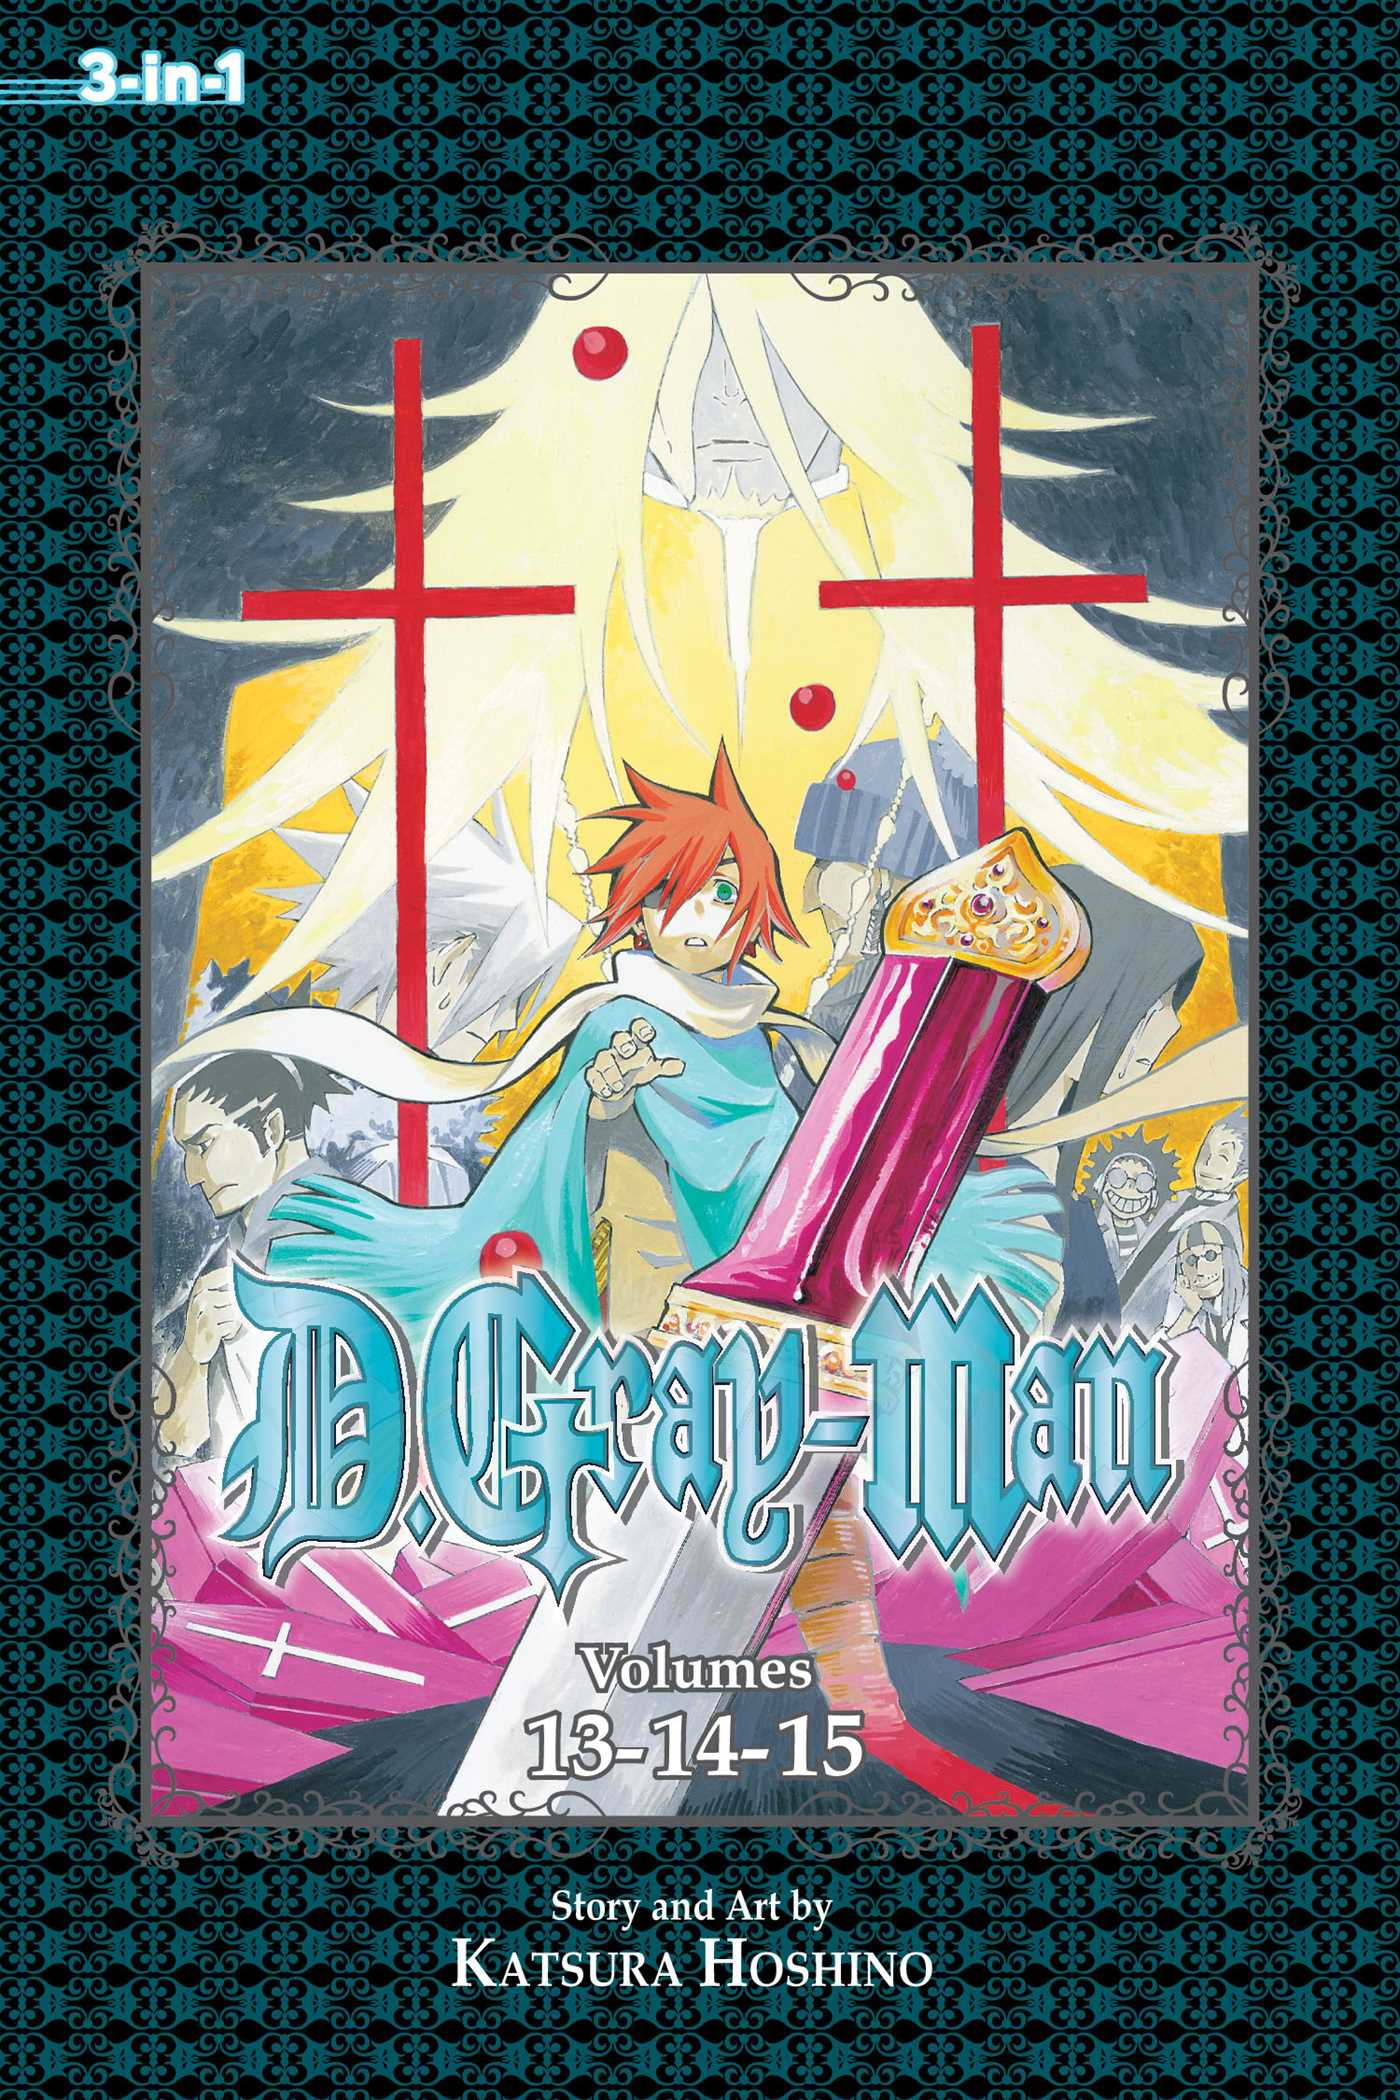 D-gray-man-(3-in-1-edition)-vol-5-9781421564685_hr